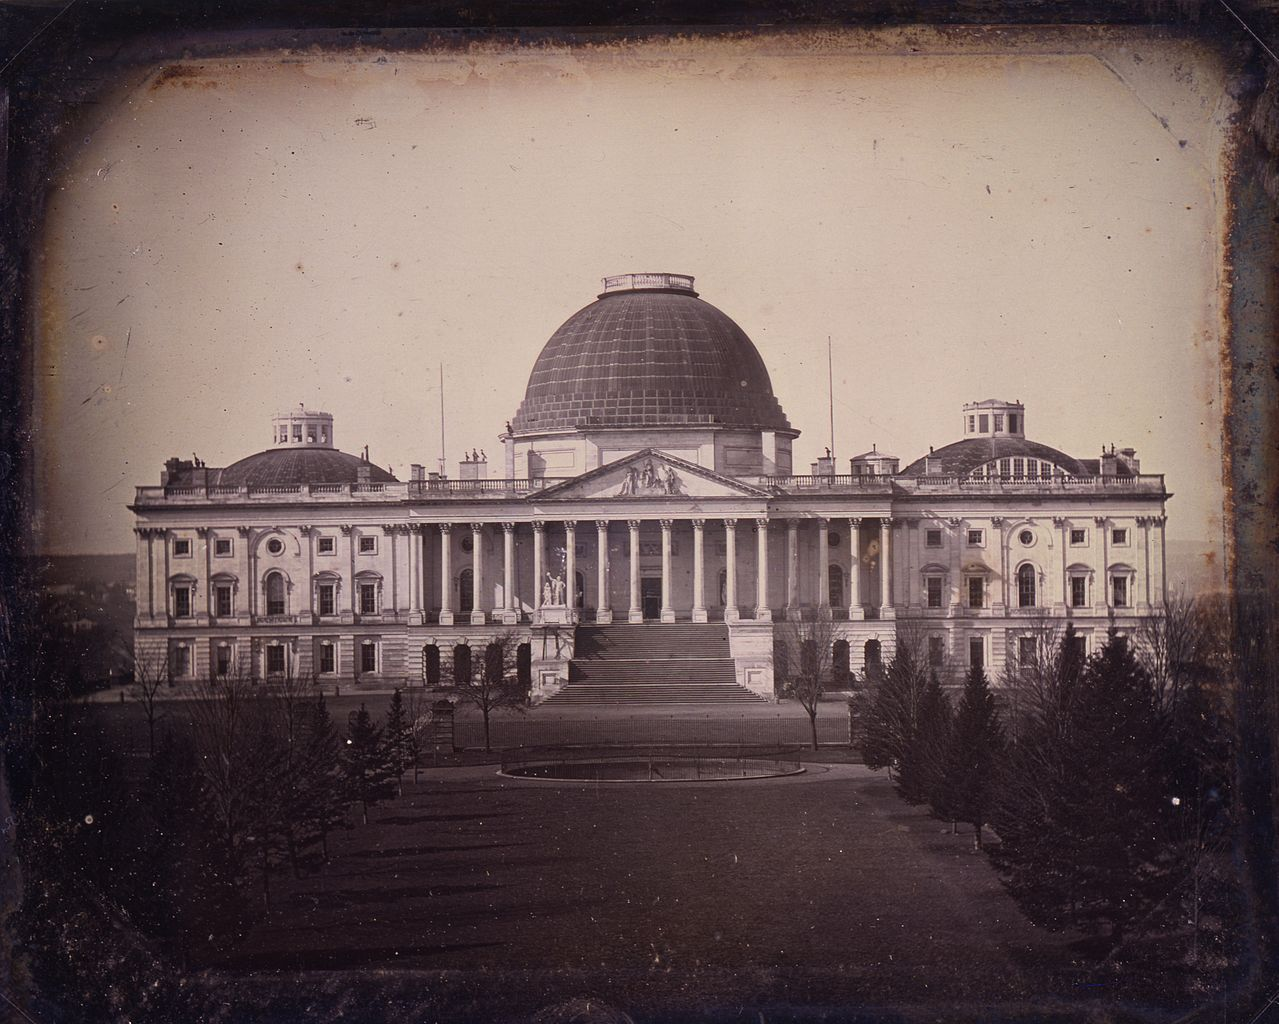 File:United States Capitol, circa 1846, by John Plumbe.jpg